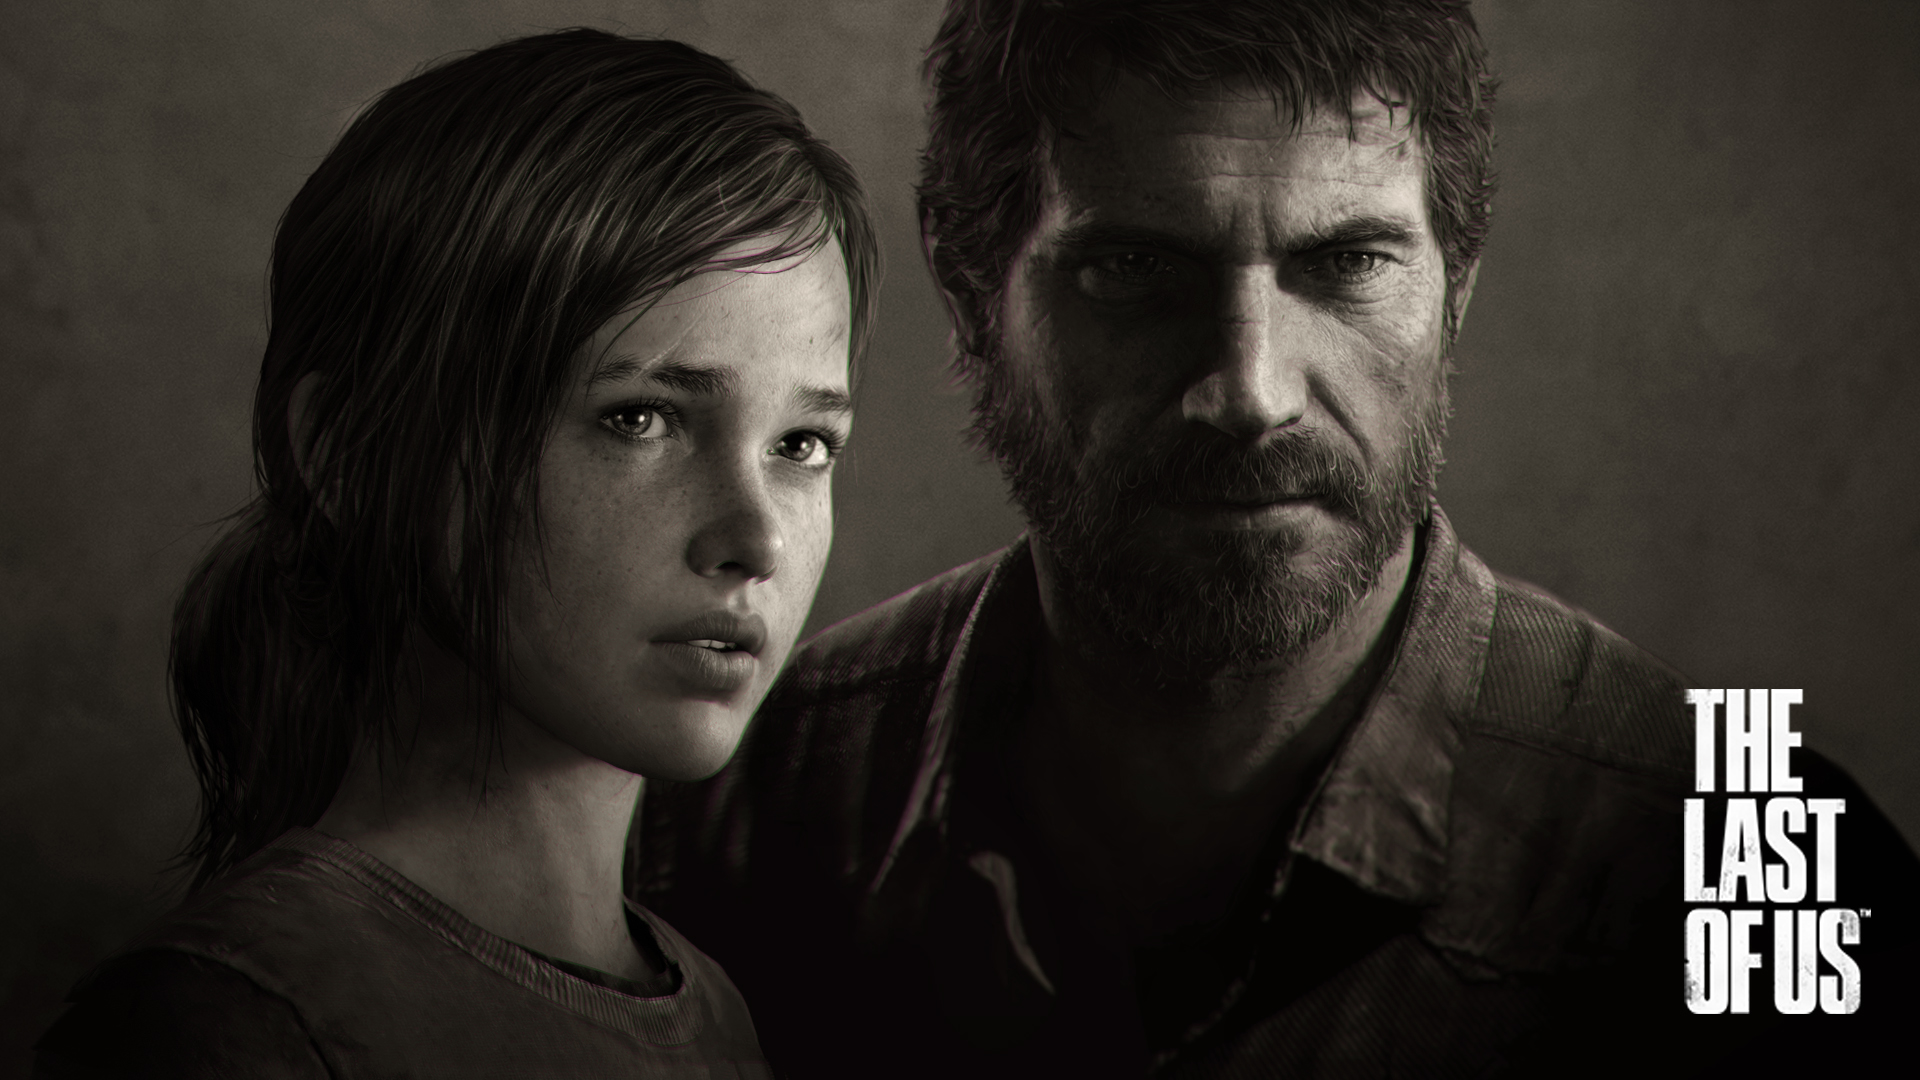 The Last Of Us Wallpaper Hd Video Games Blogger